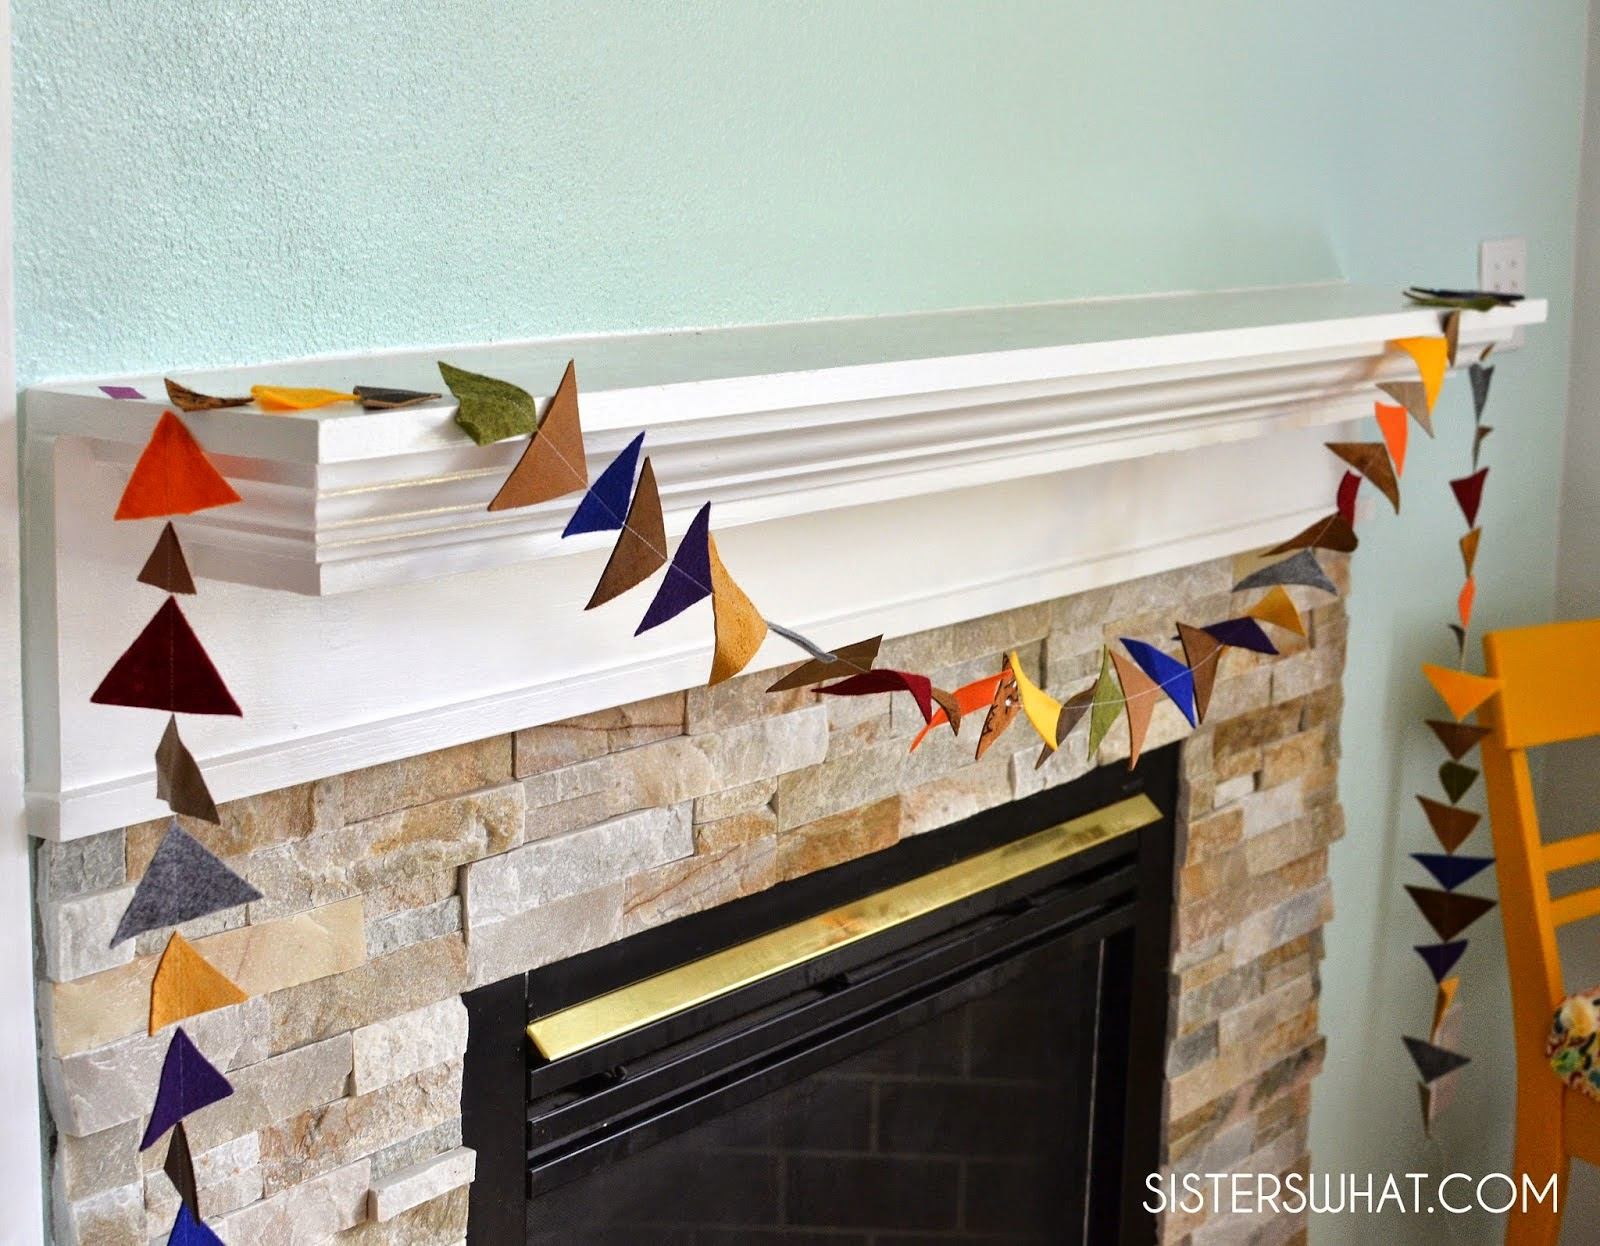 http://www.sisterswhat.com/2015/03/diy-felt-and-leather-triangle-garland.html